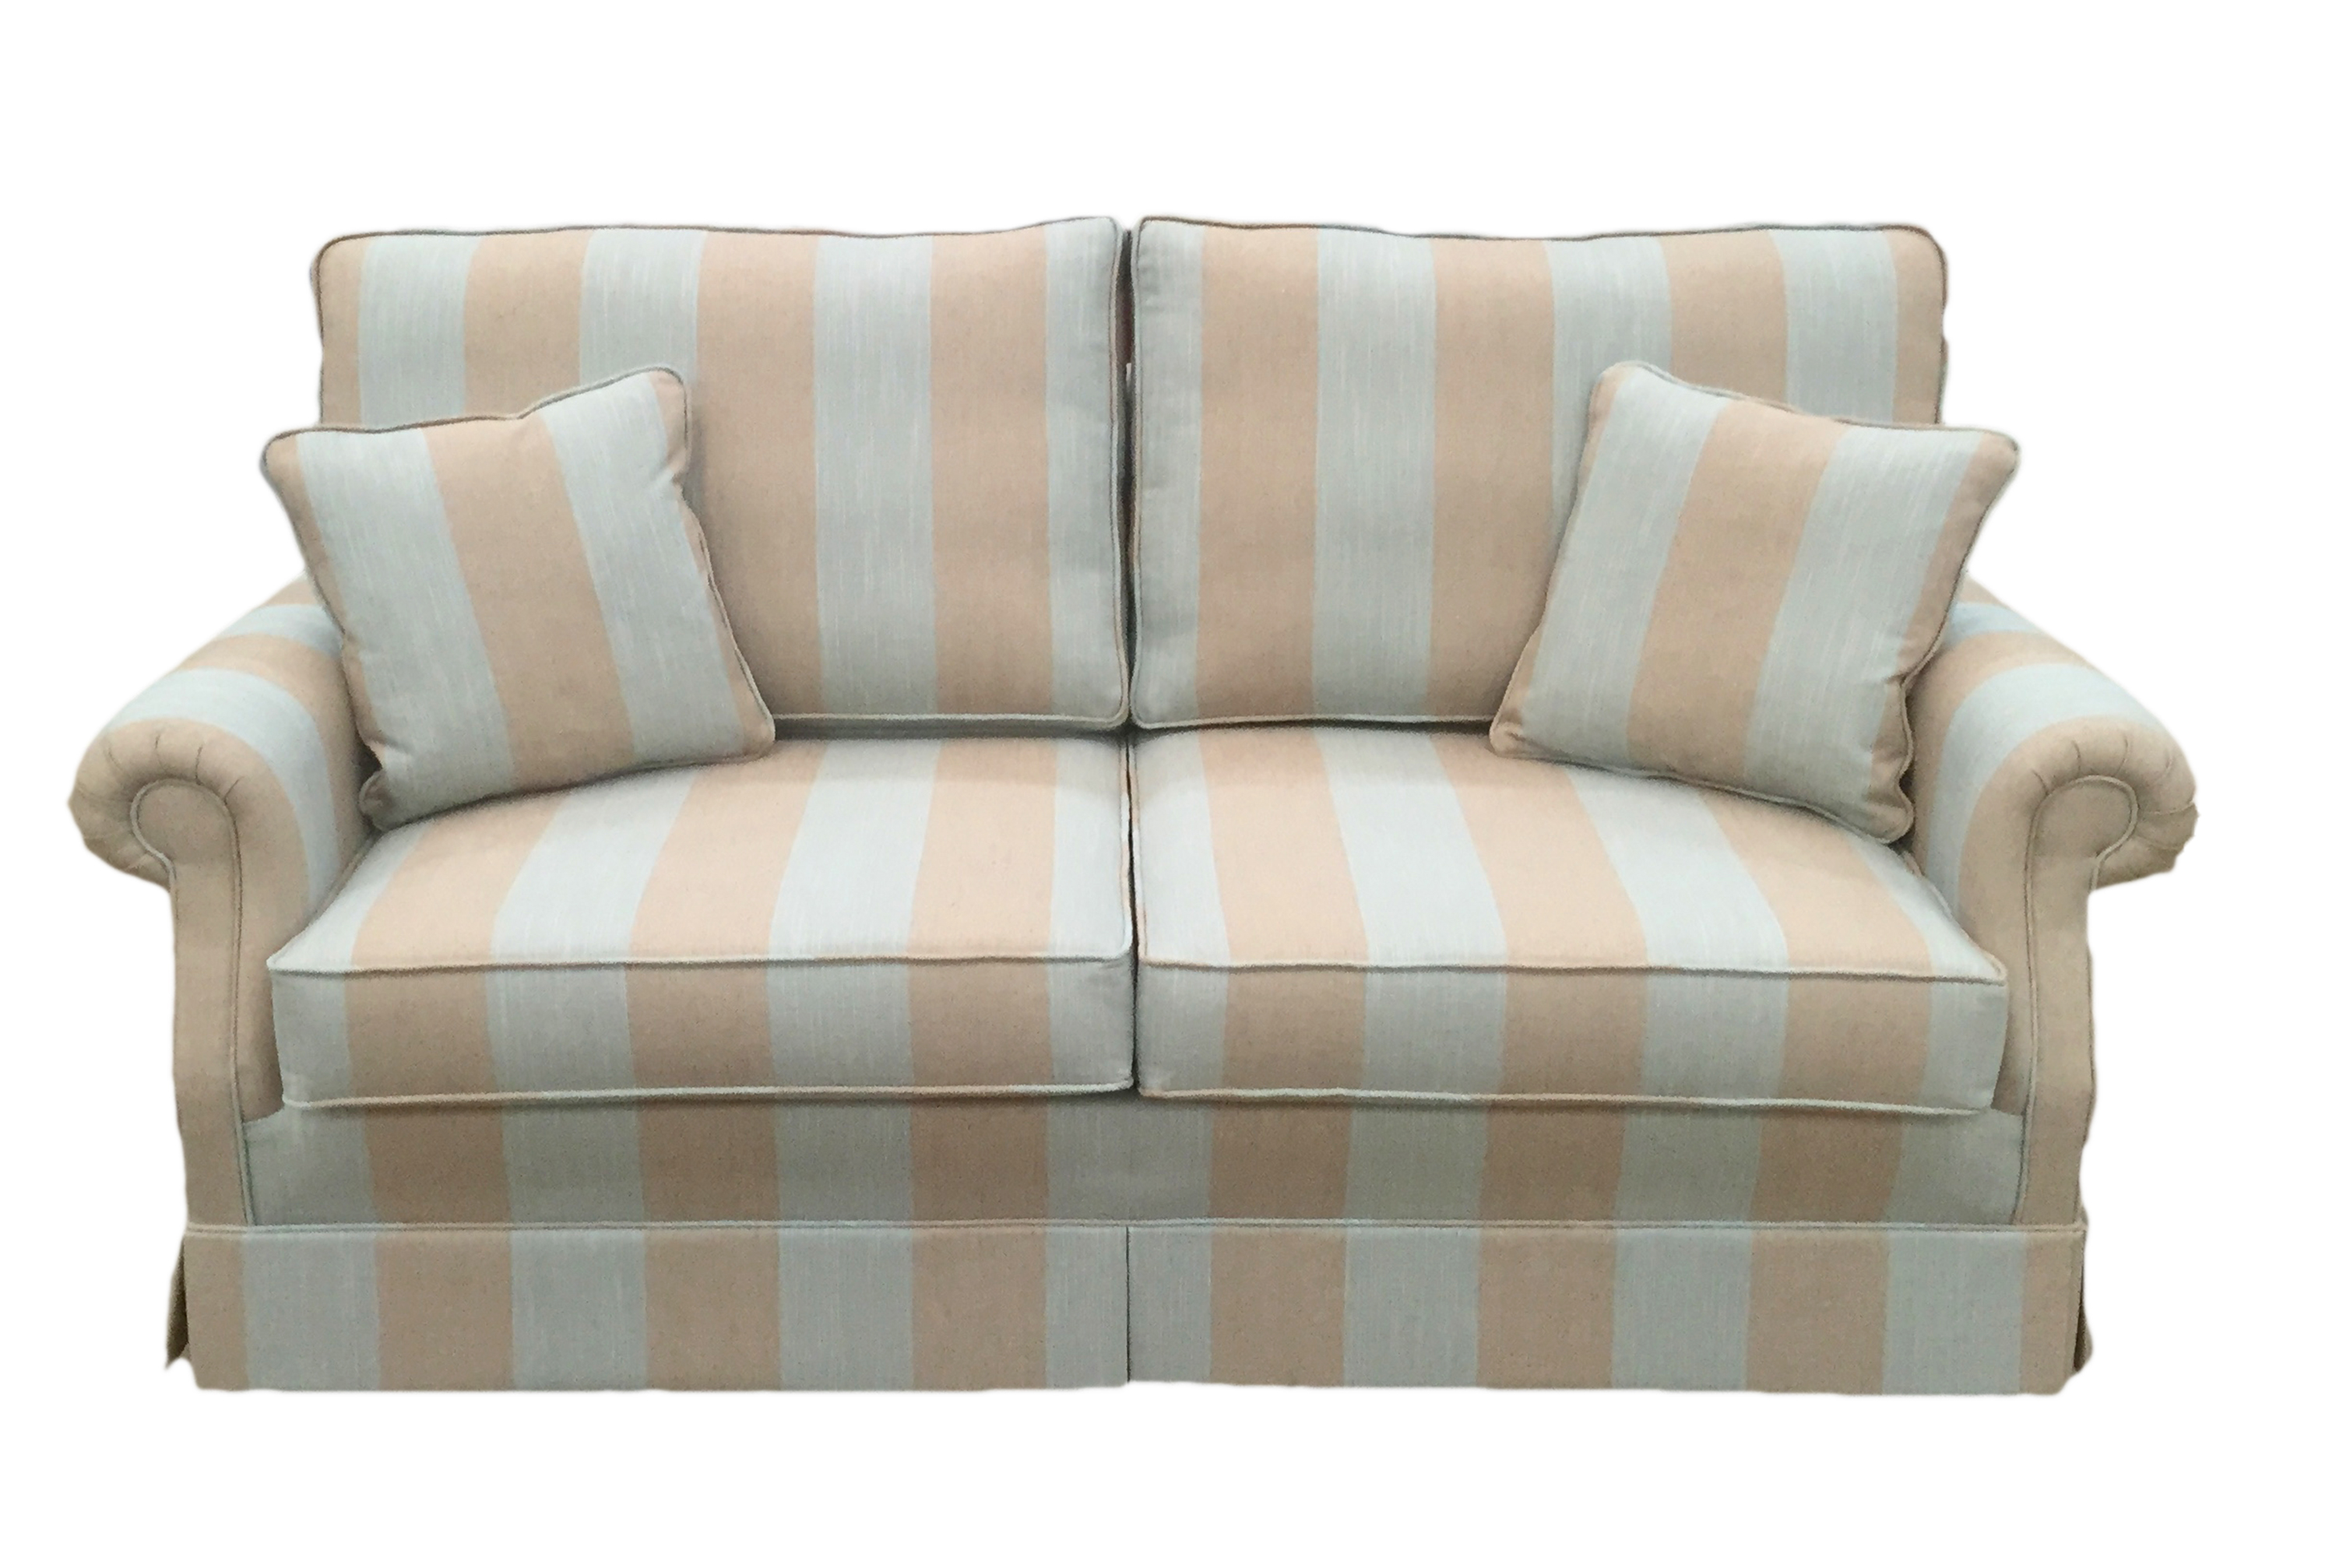 Clare-sofa-bed-in-silver-collection